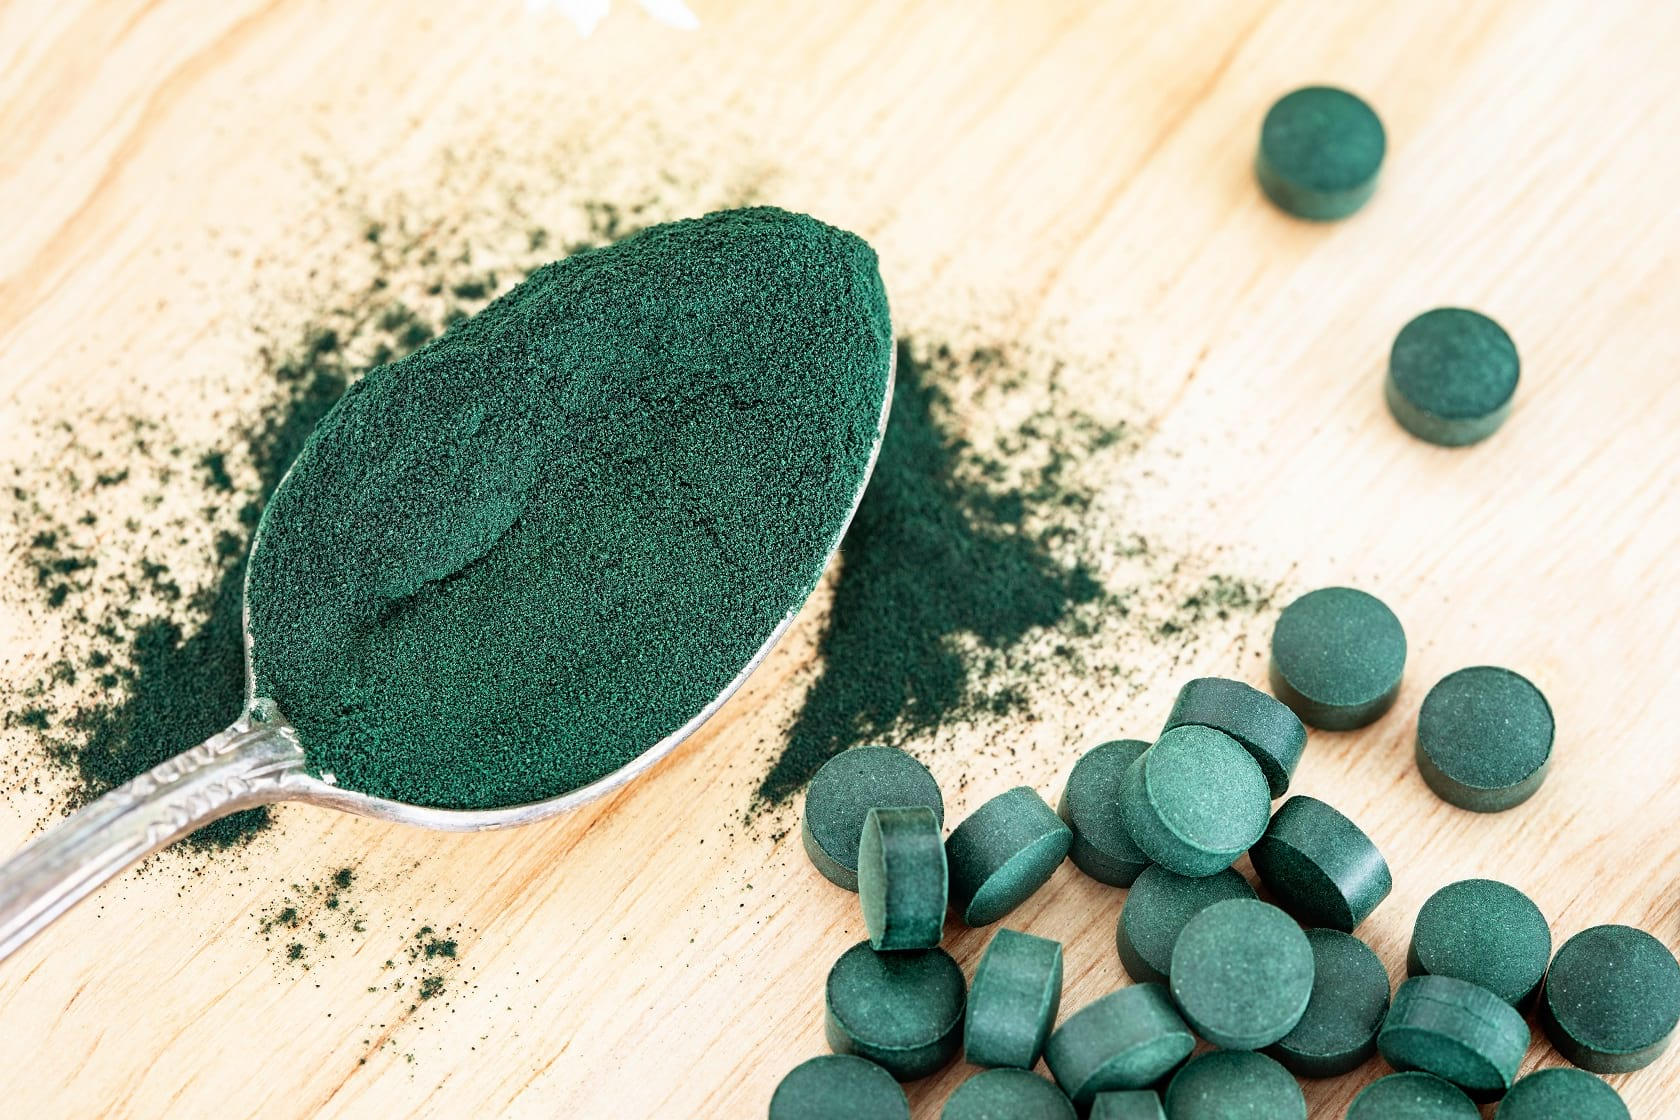 Benefits of Spirulina on Skin